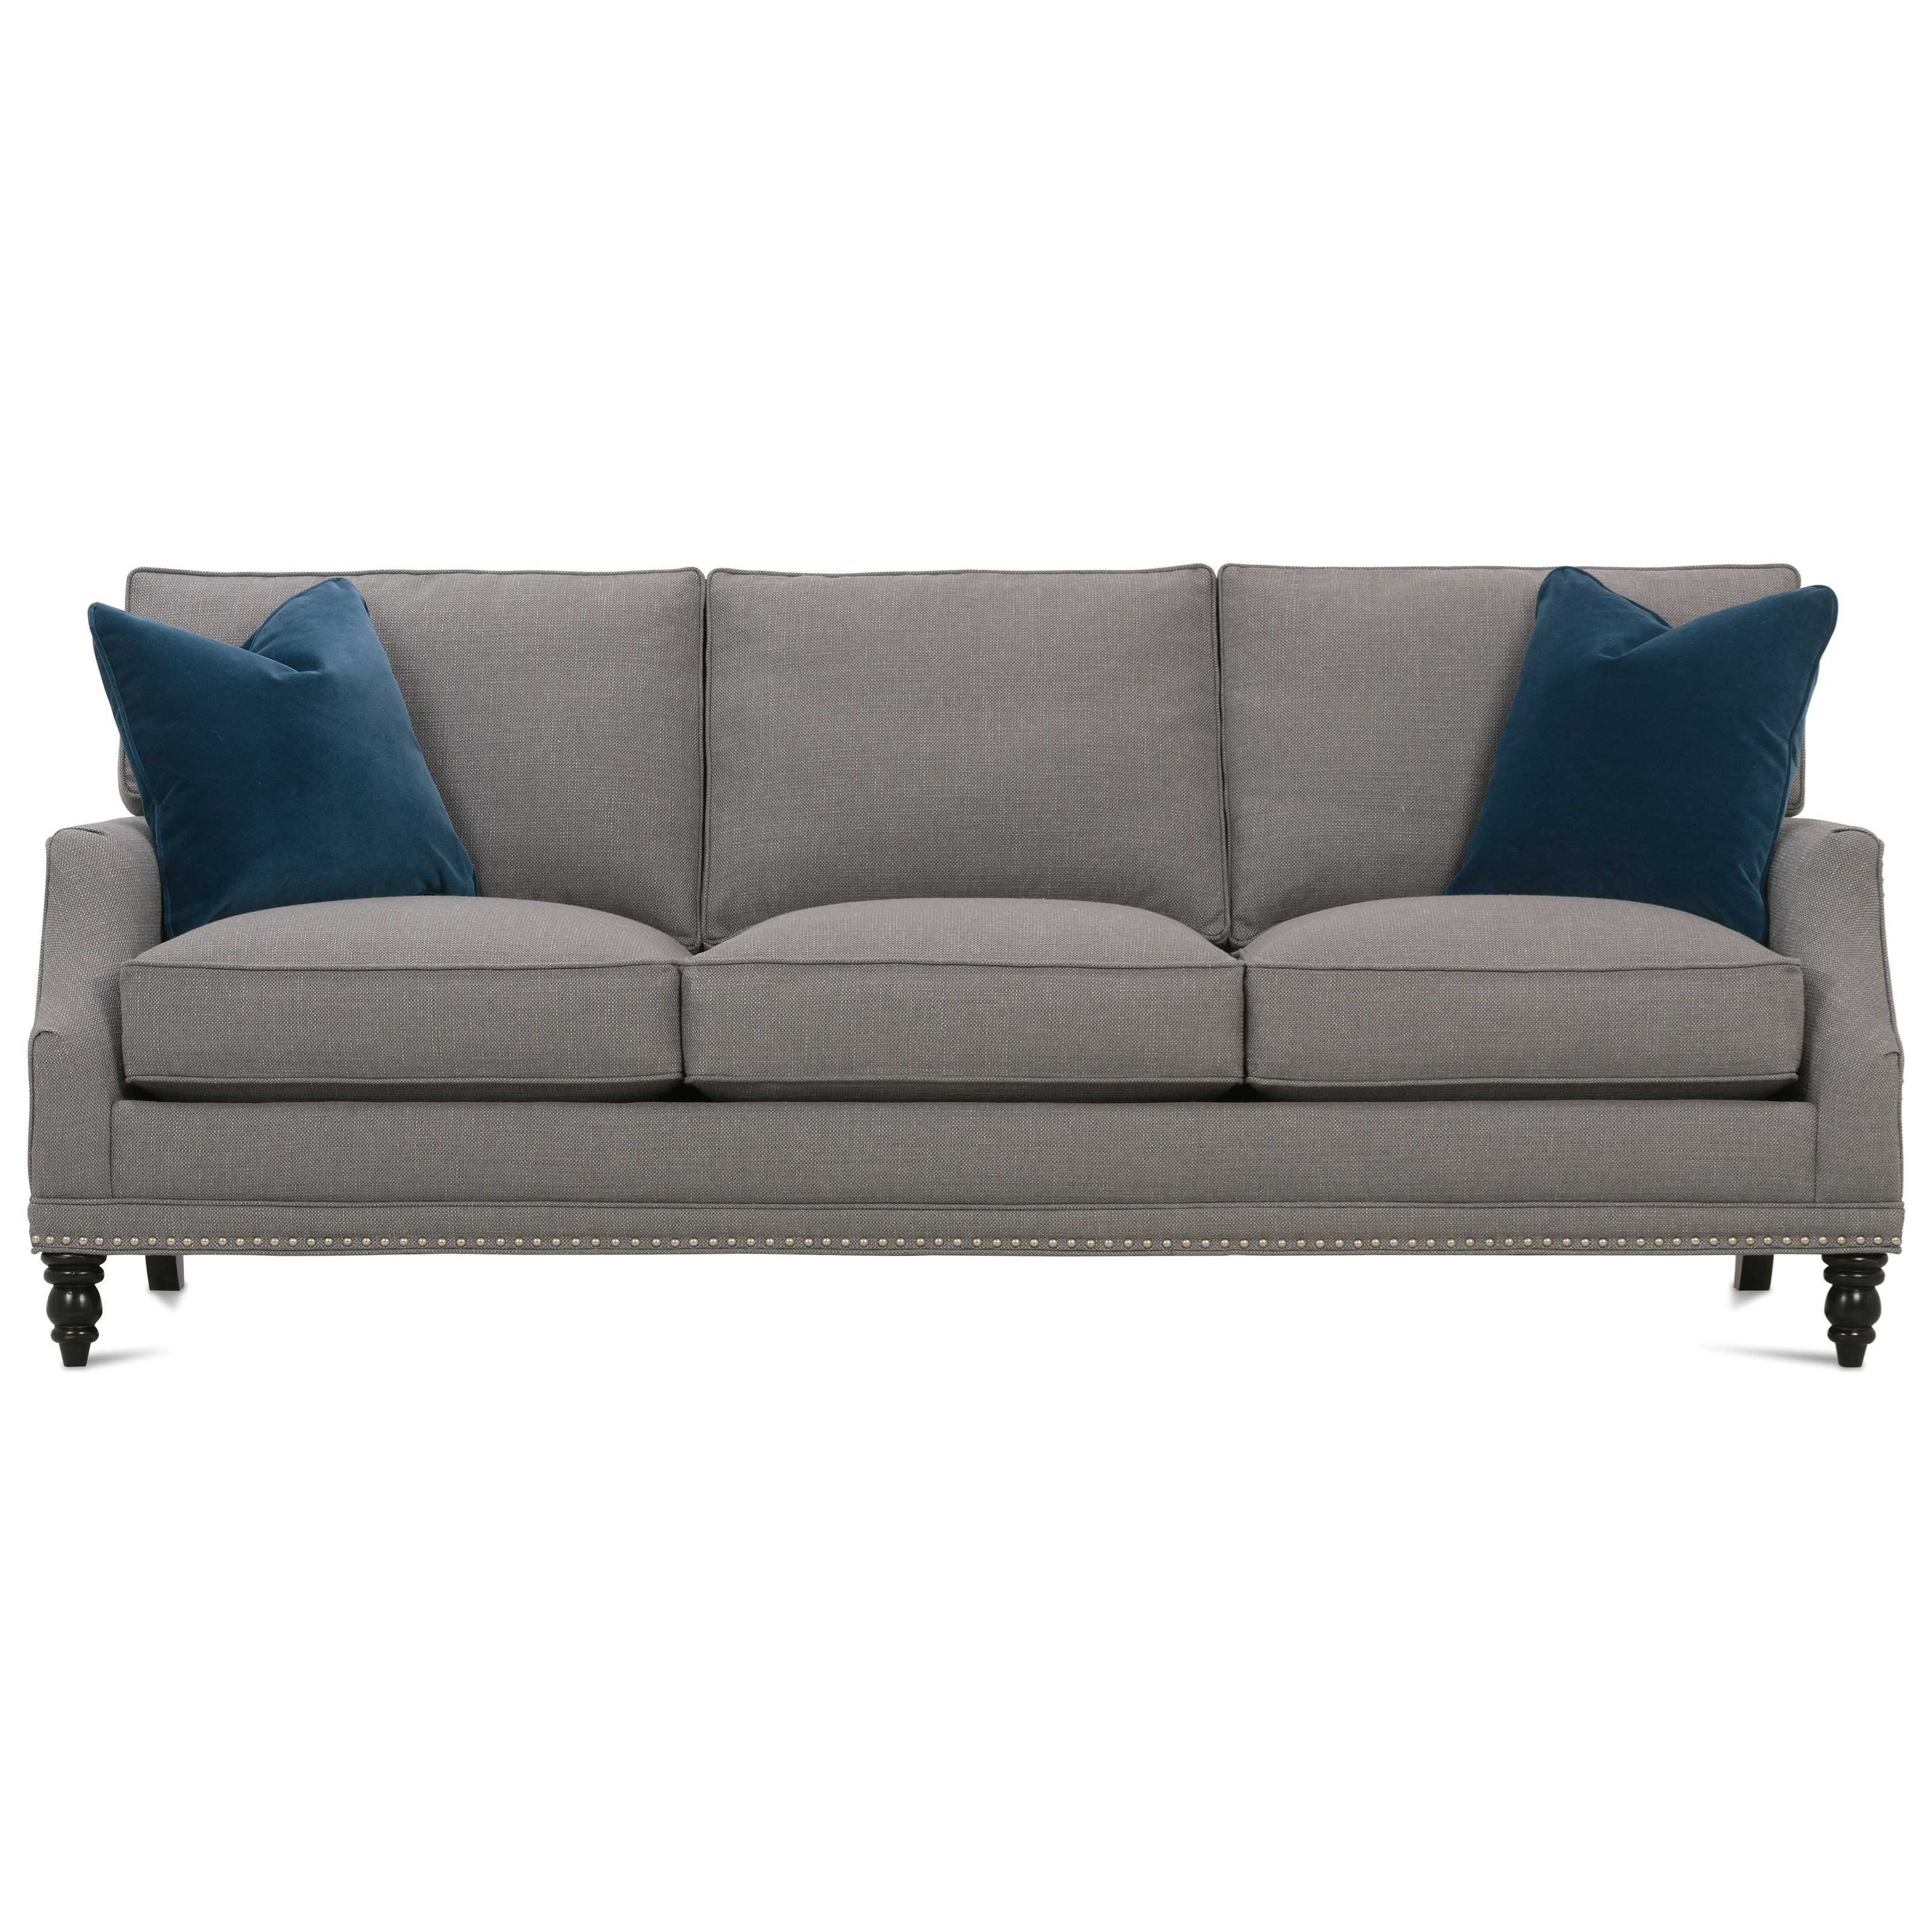 Exceptionnel Rowe Selections IICustomizable Transitional Sofa Turned Legs ...